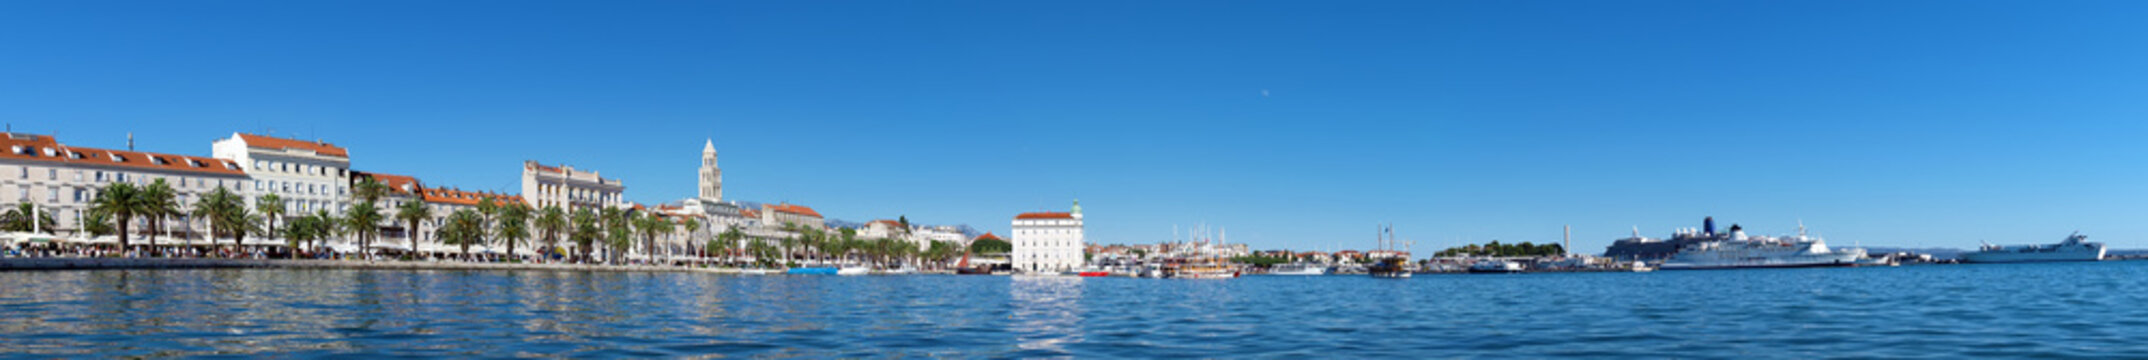 Panoramic view of the old town Split in Croatia.